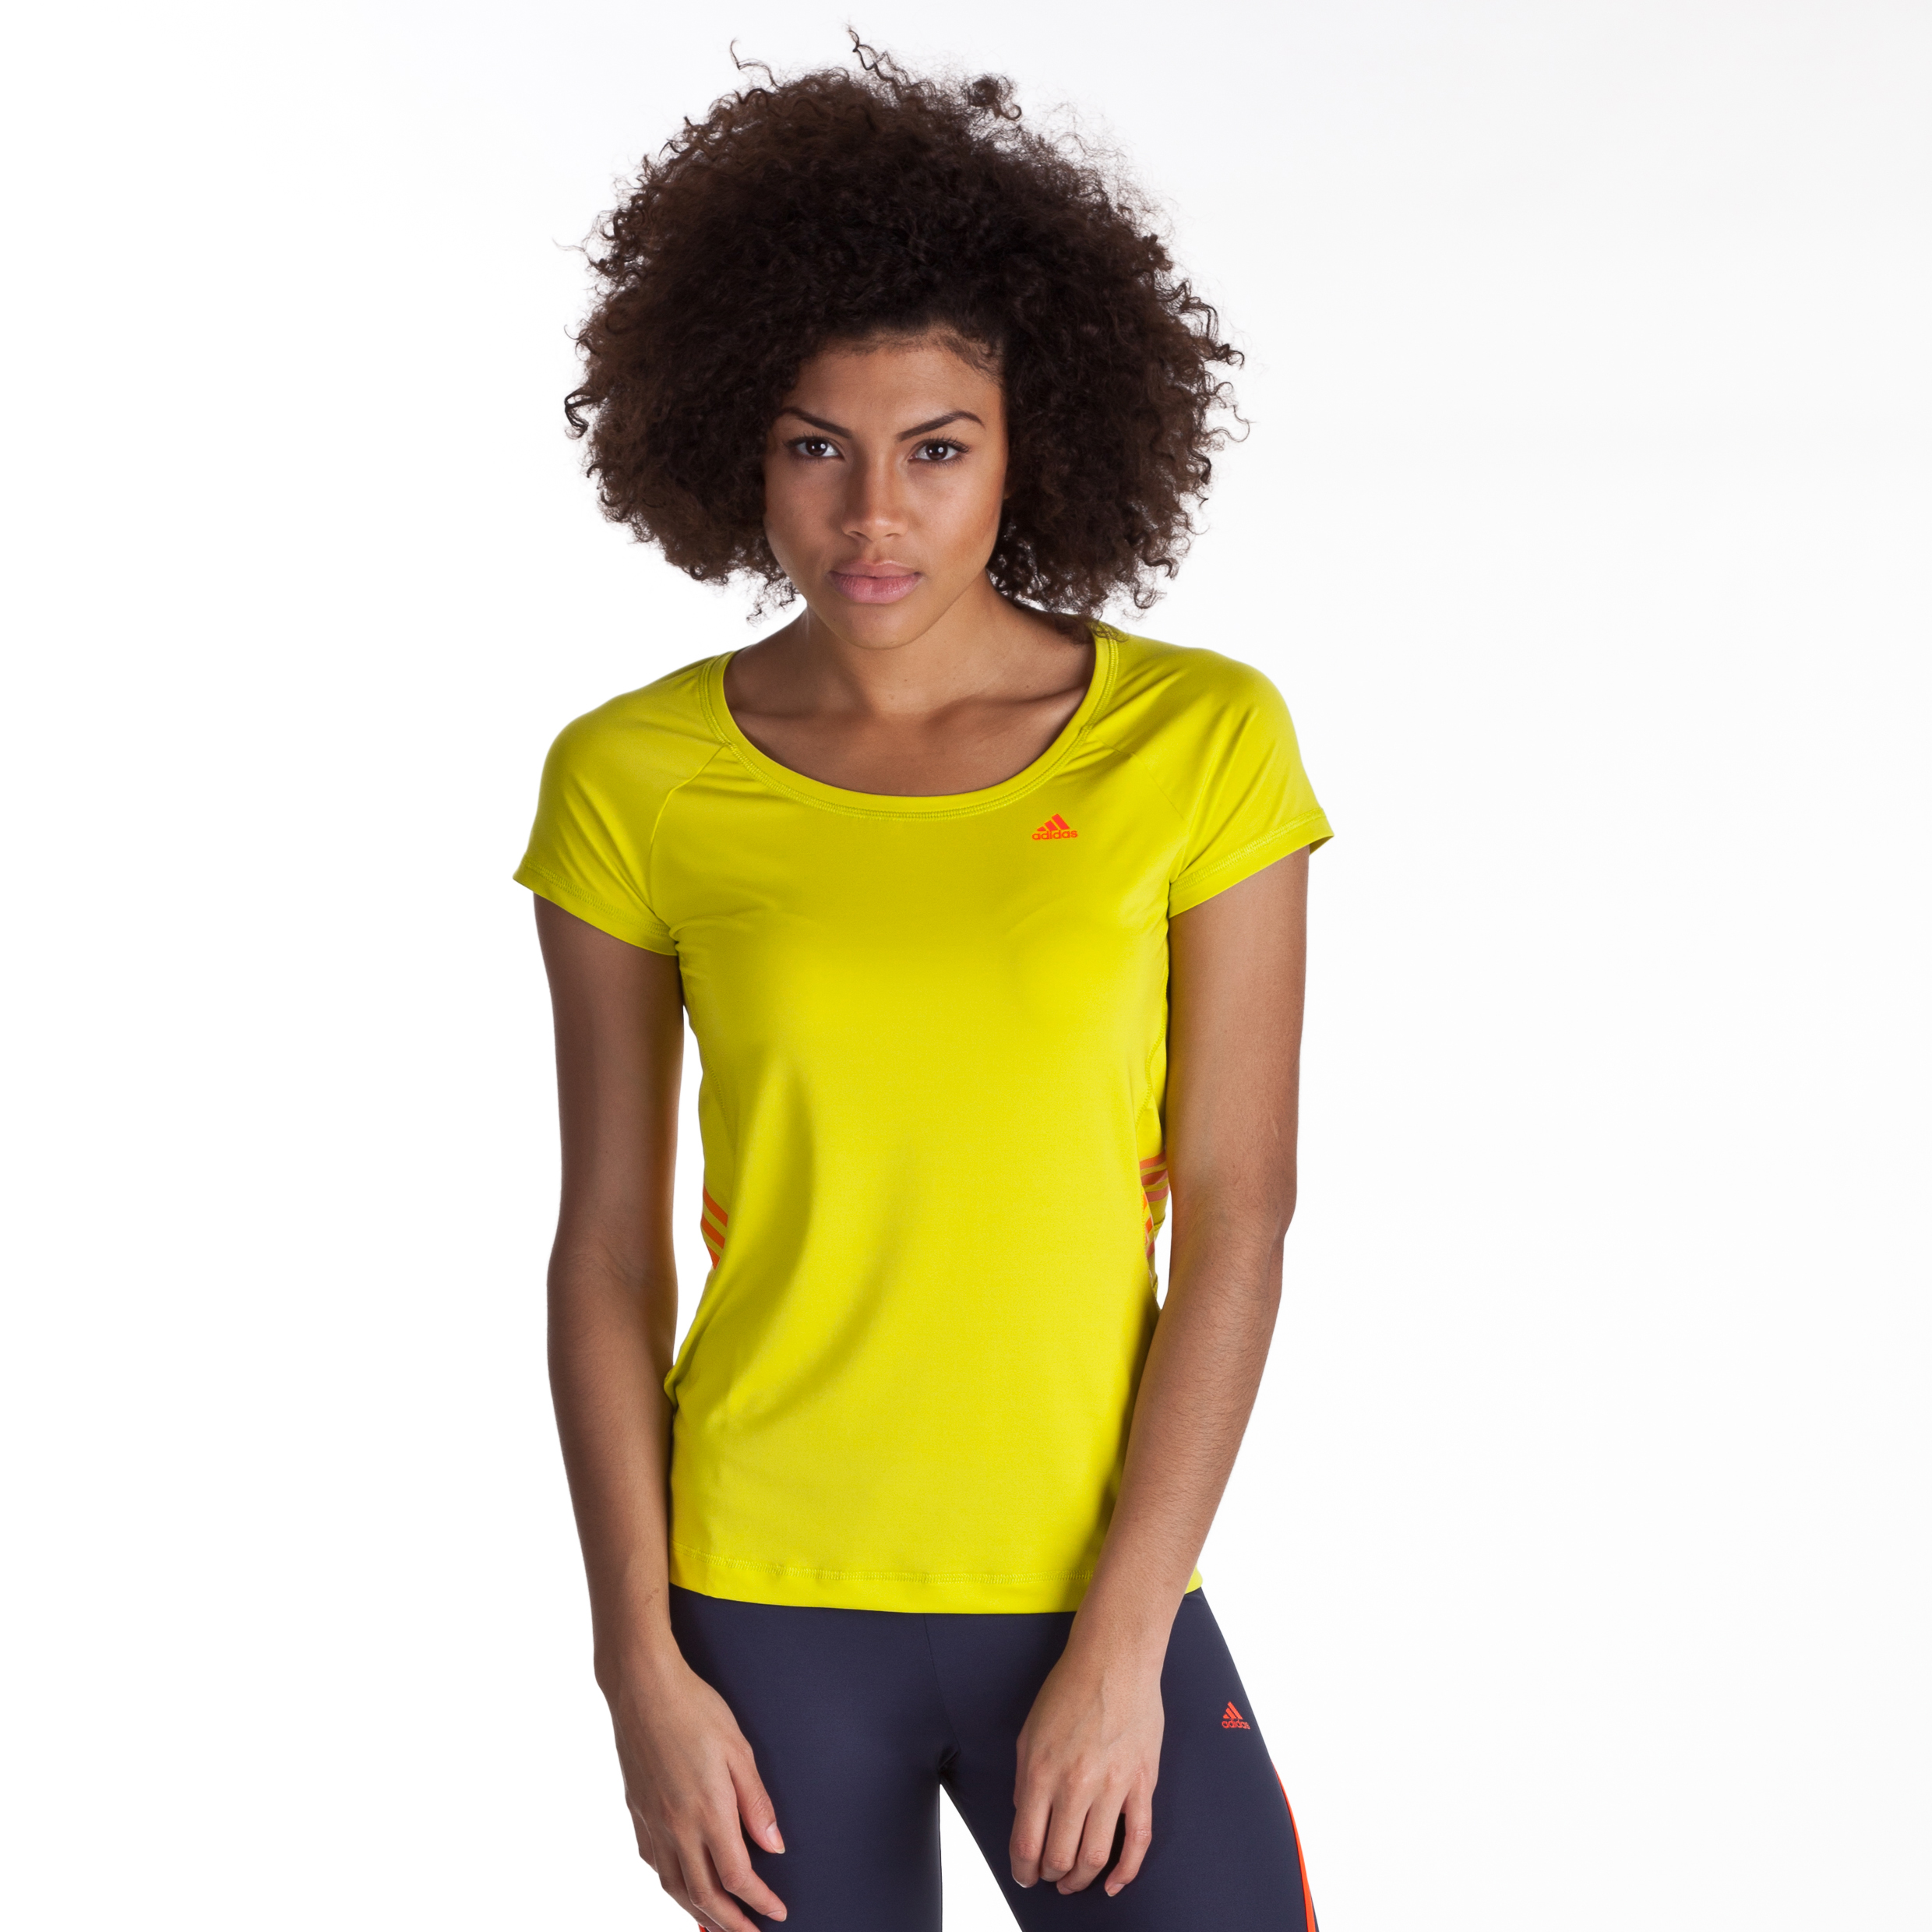 Adidas Adizero Tee - lab lime/infrared - Womens